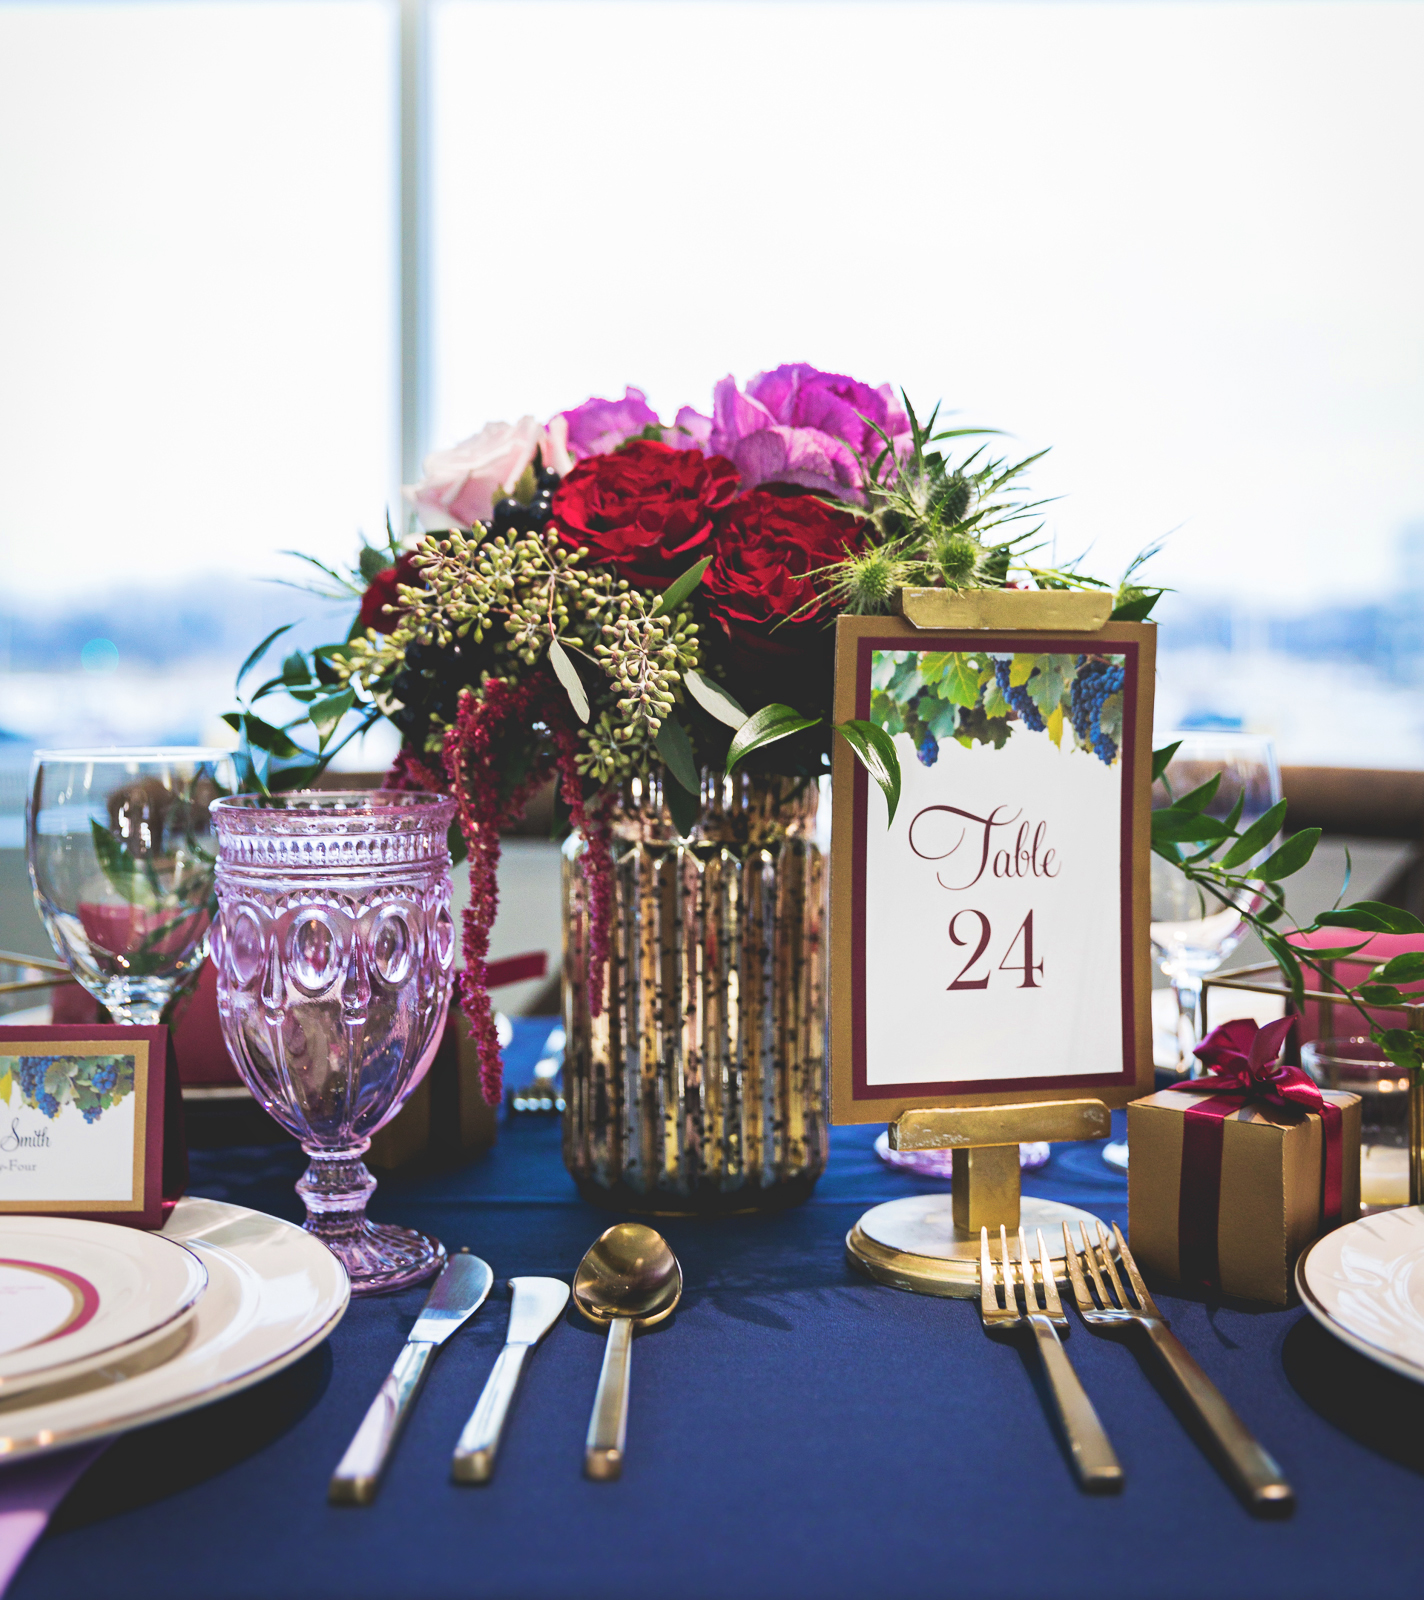 Marsala, amethyst, wedding inspiration, Madison, wine, wedding table, wedding decor, table number, e